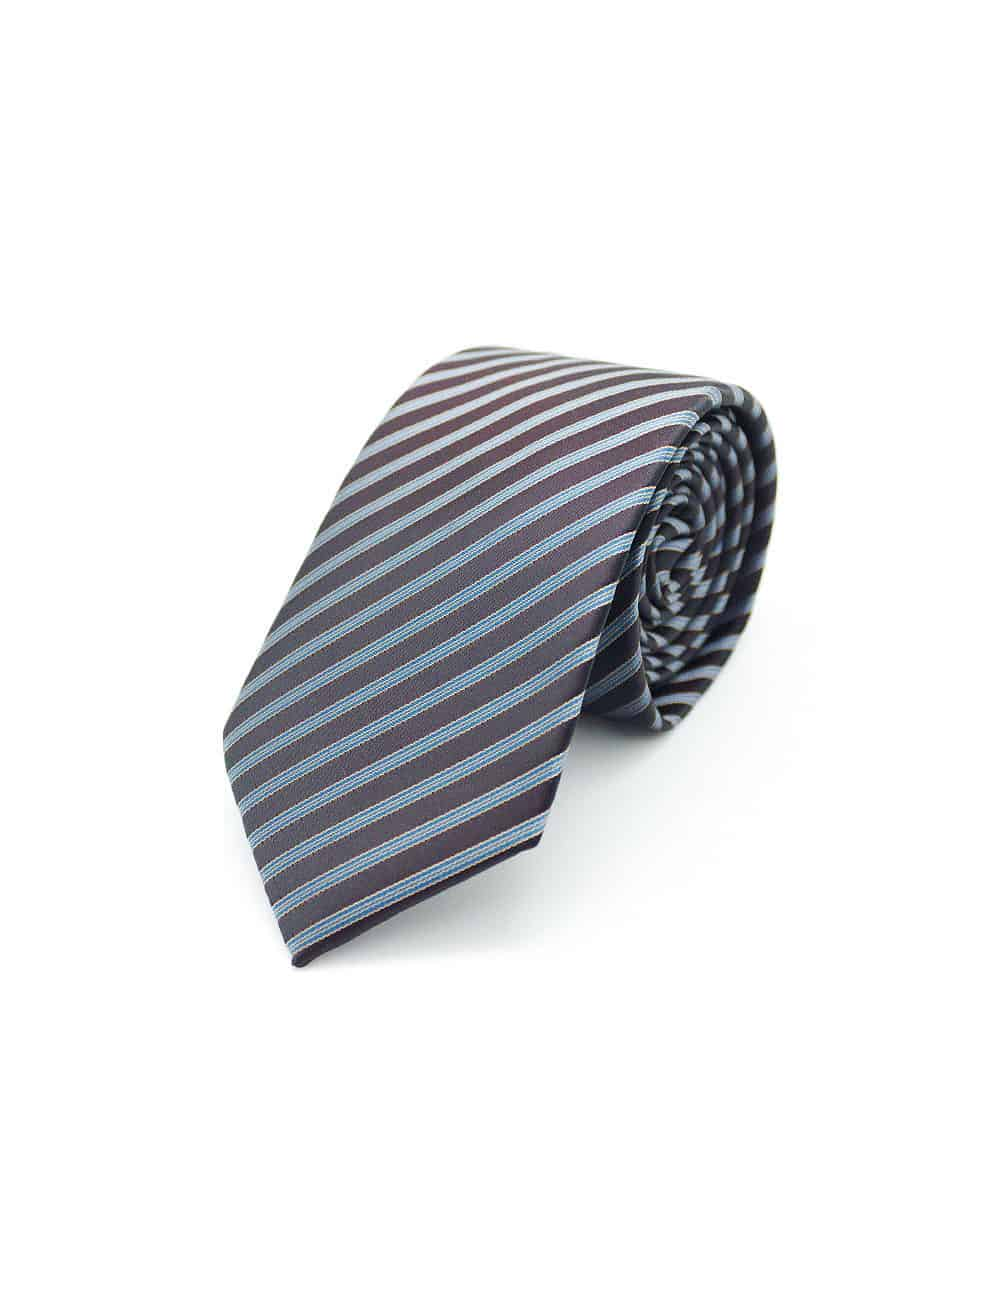 Brown Stripes Spill Resist Woven Necktie NT34.9